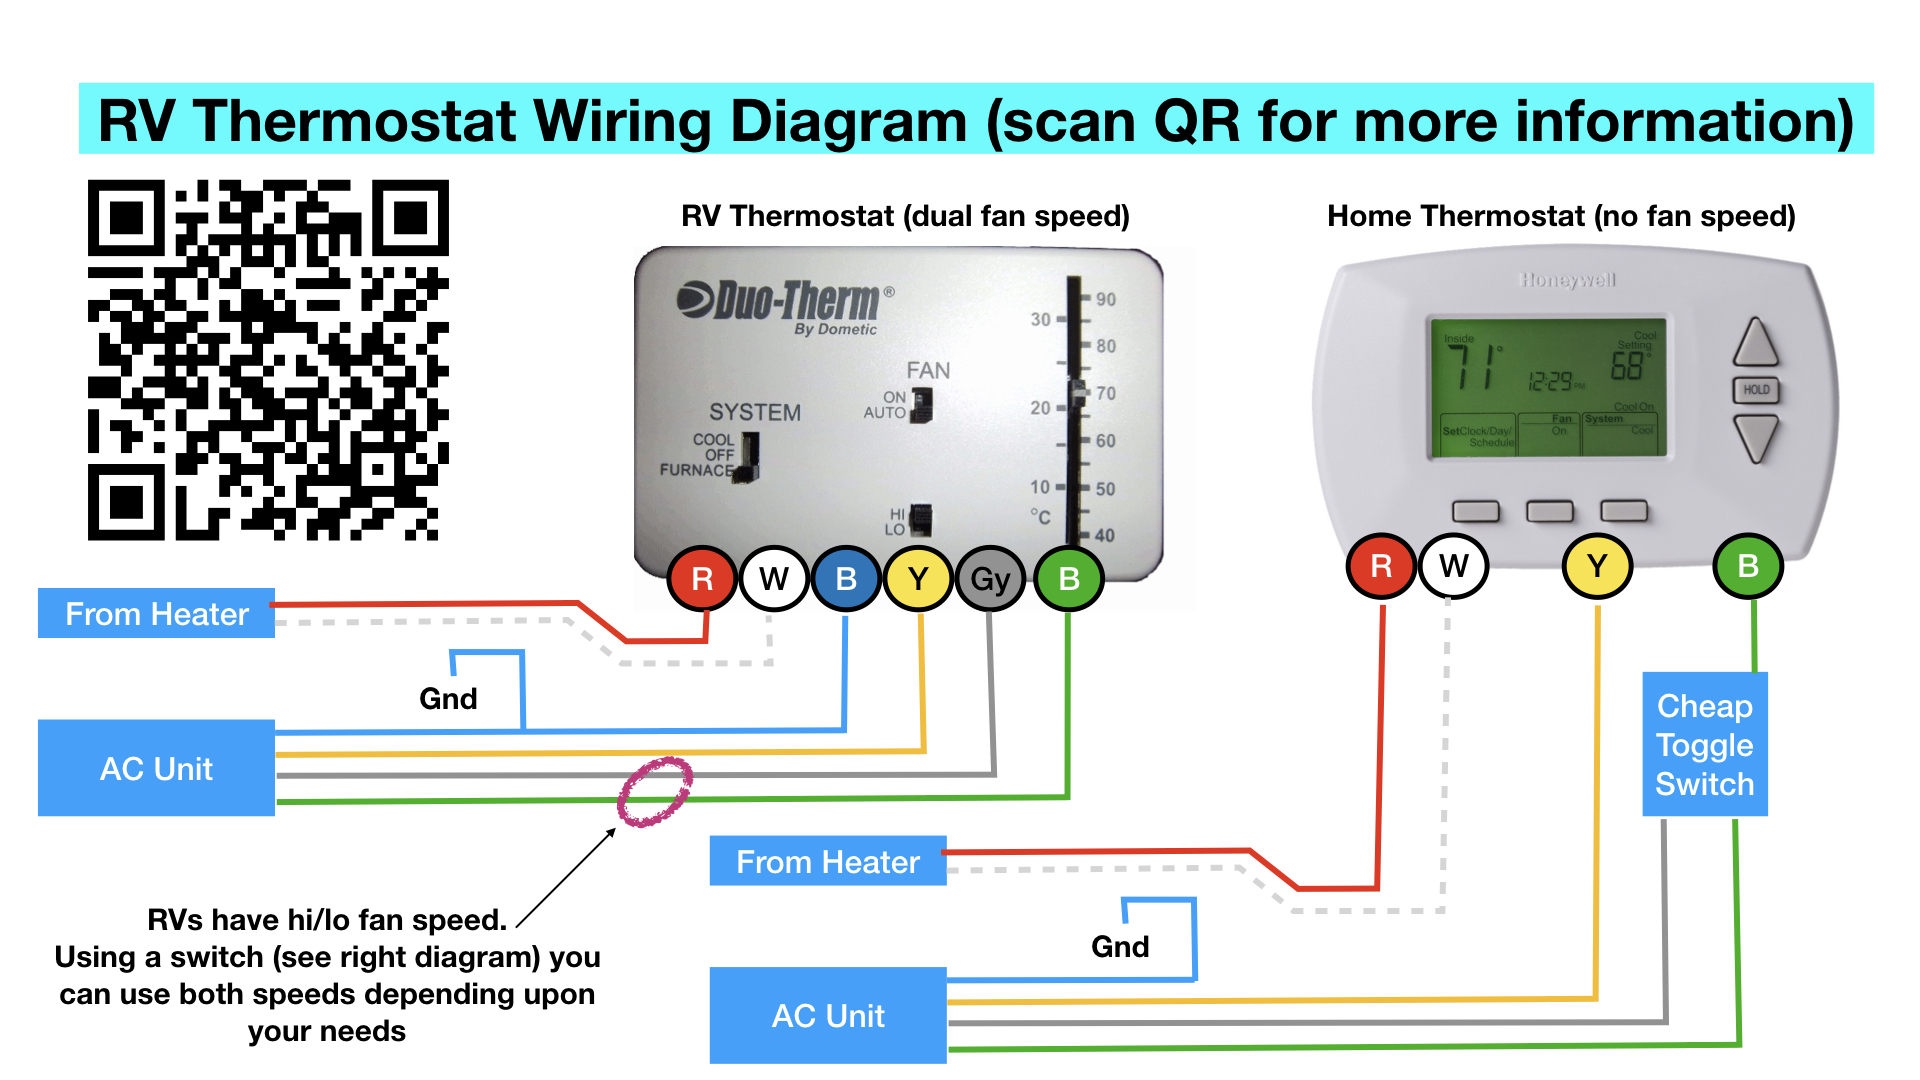 atwood furnace thermostat diagram query Atwood Thermostat Wiring Diagram atwood water heater wiring diagram